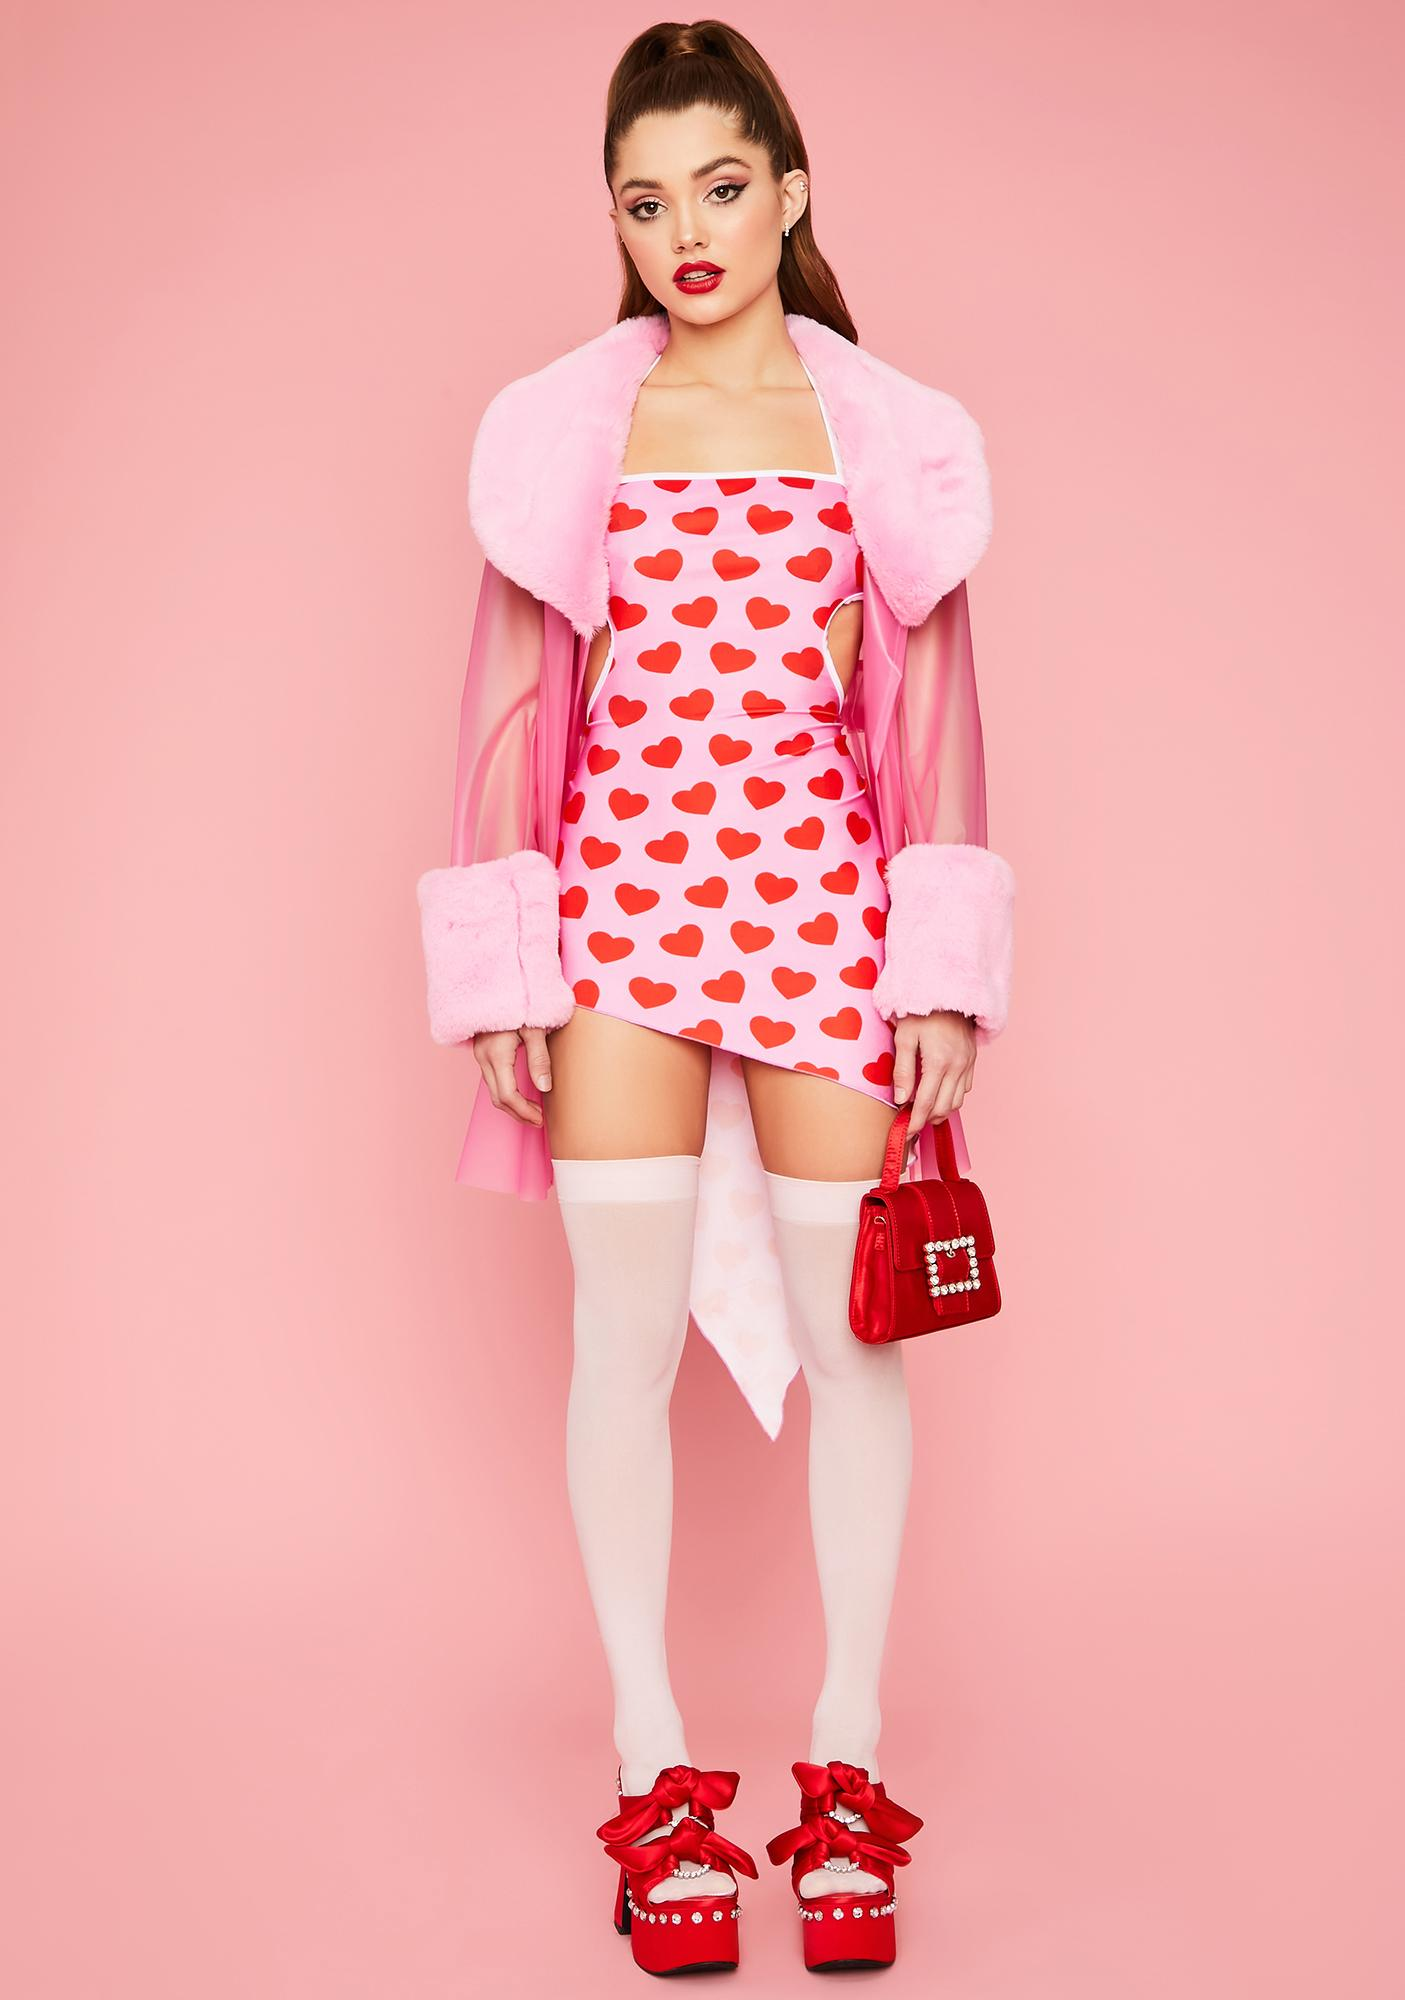 How She Does It Heart Cutout Mini Dress